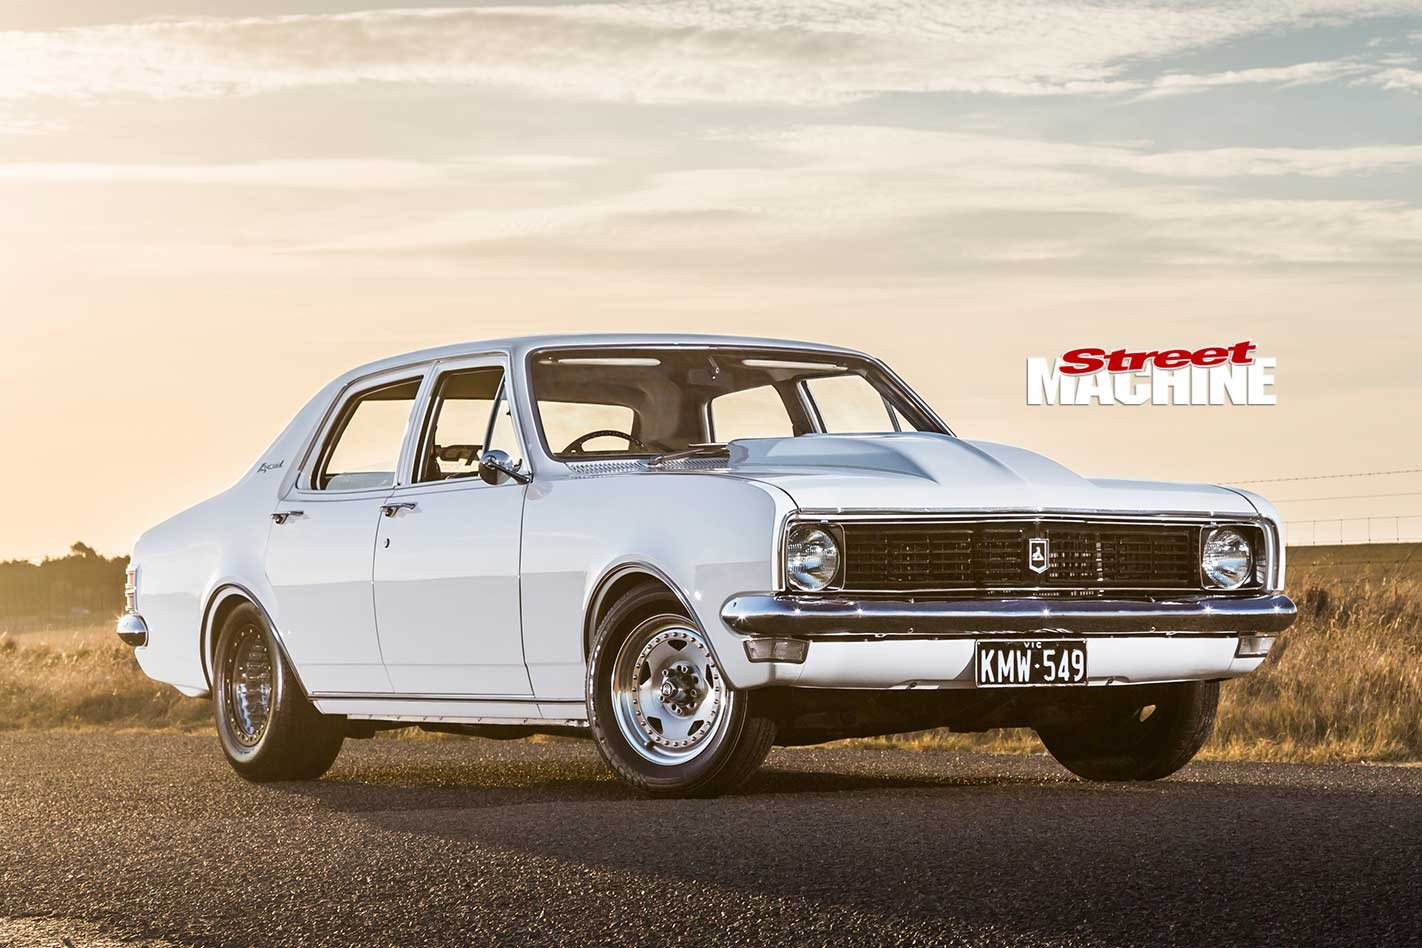 LS1-powered 1969 Holden HT